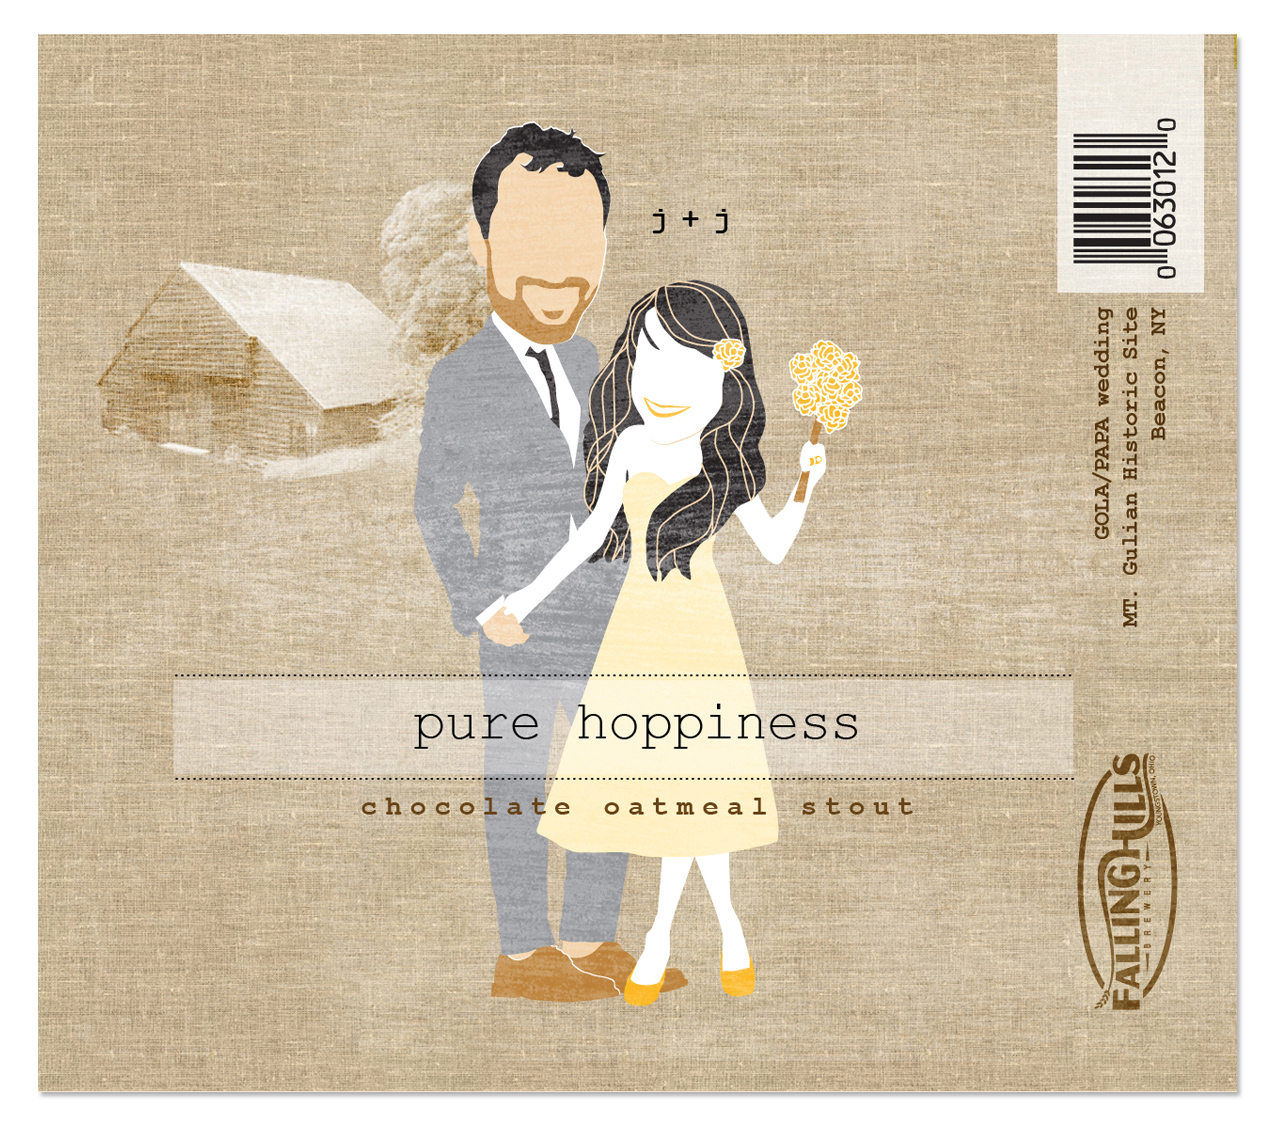 Wedding beer label made with a cartoon likeness of the bride and groom. Make your own caricature wedding favors for beer by uploading your artwork.